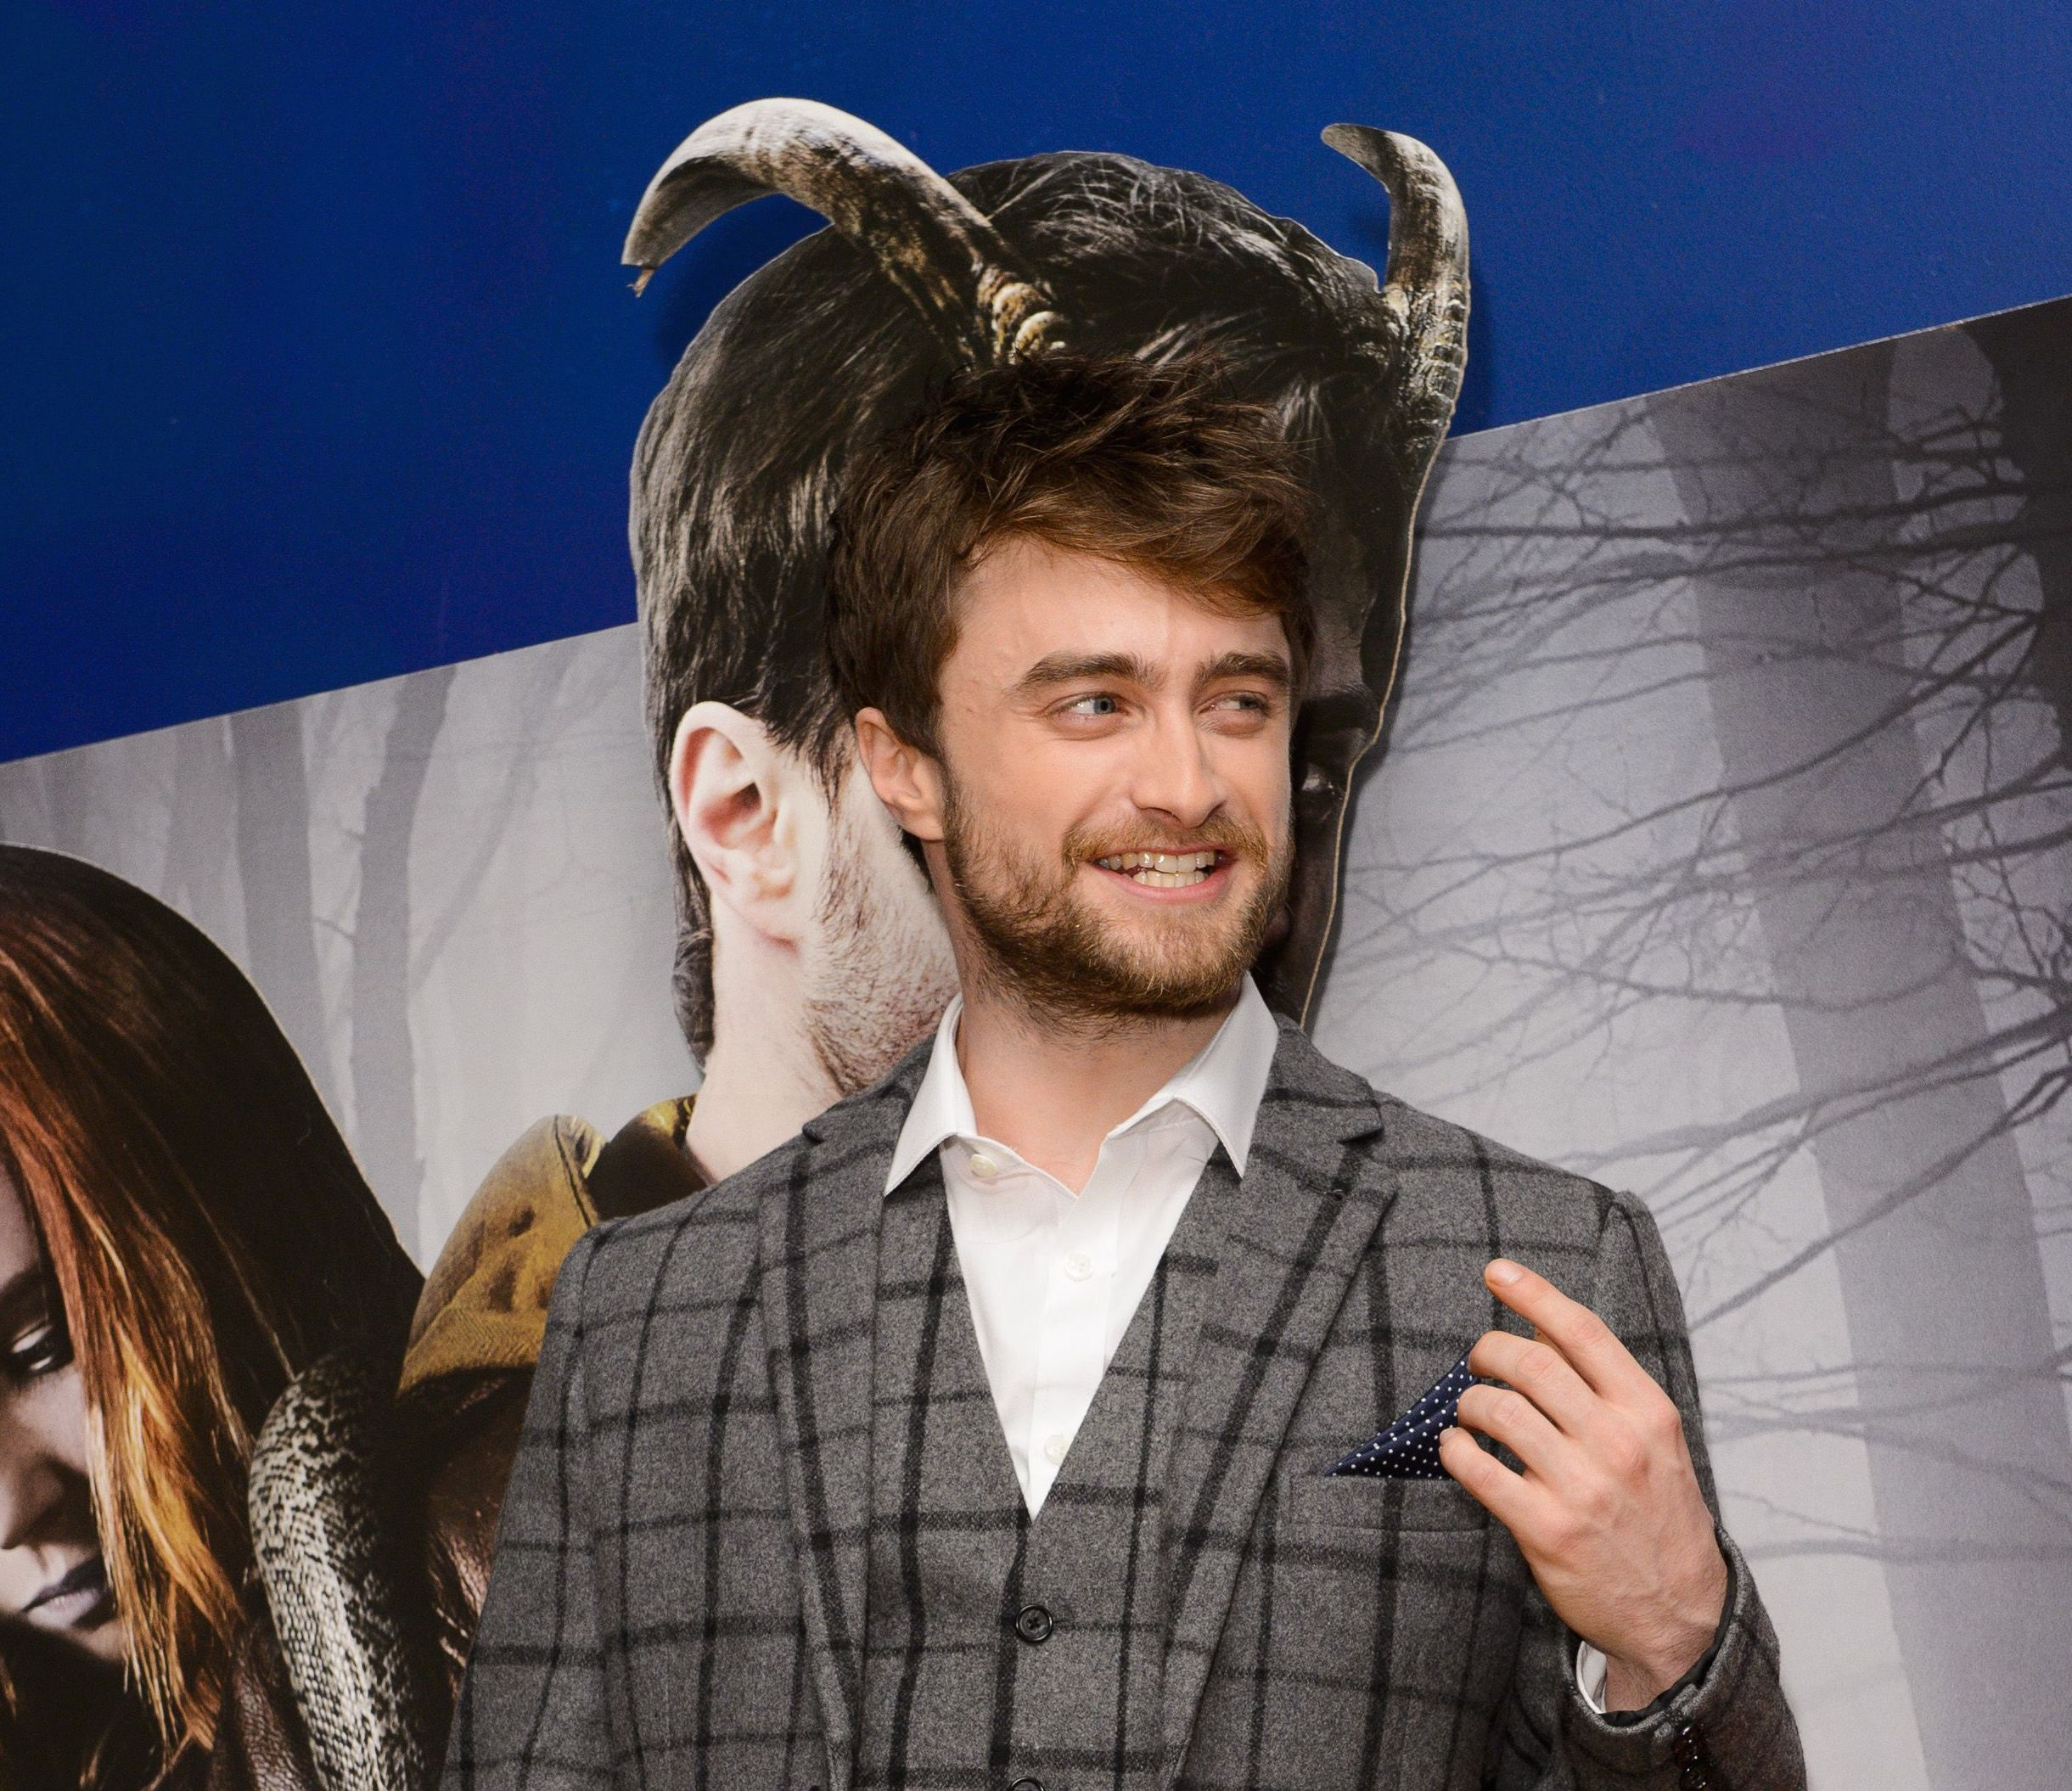 Daniel Radcliff at Horns Premiere, London October 20. Rex Features